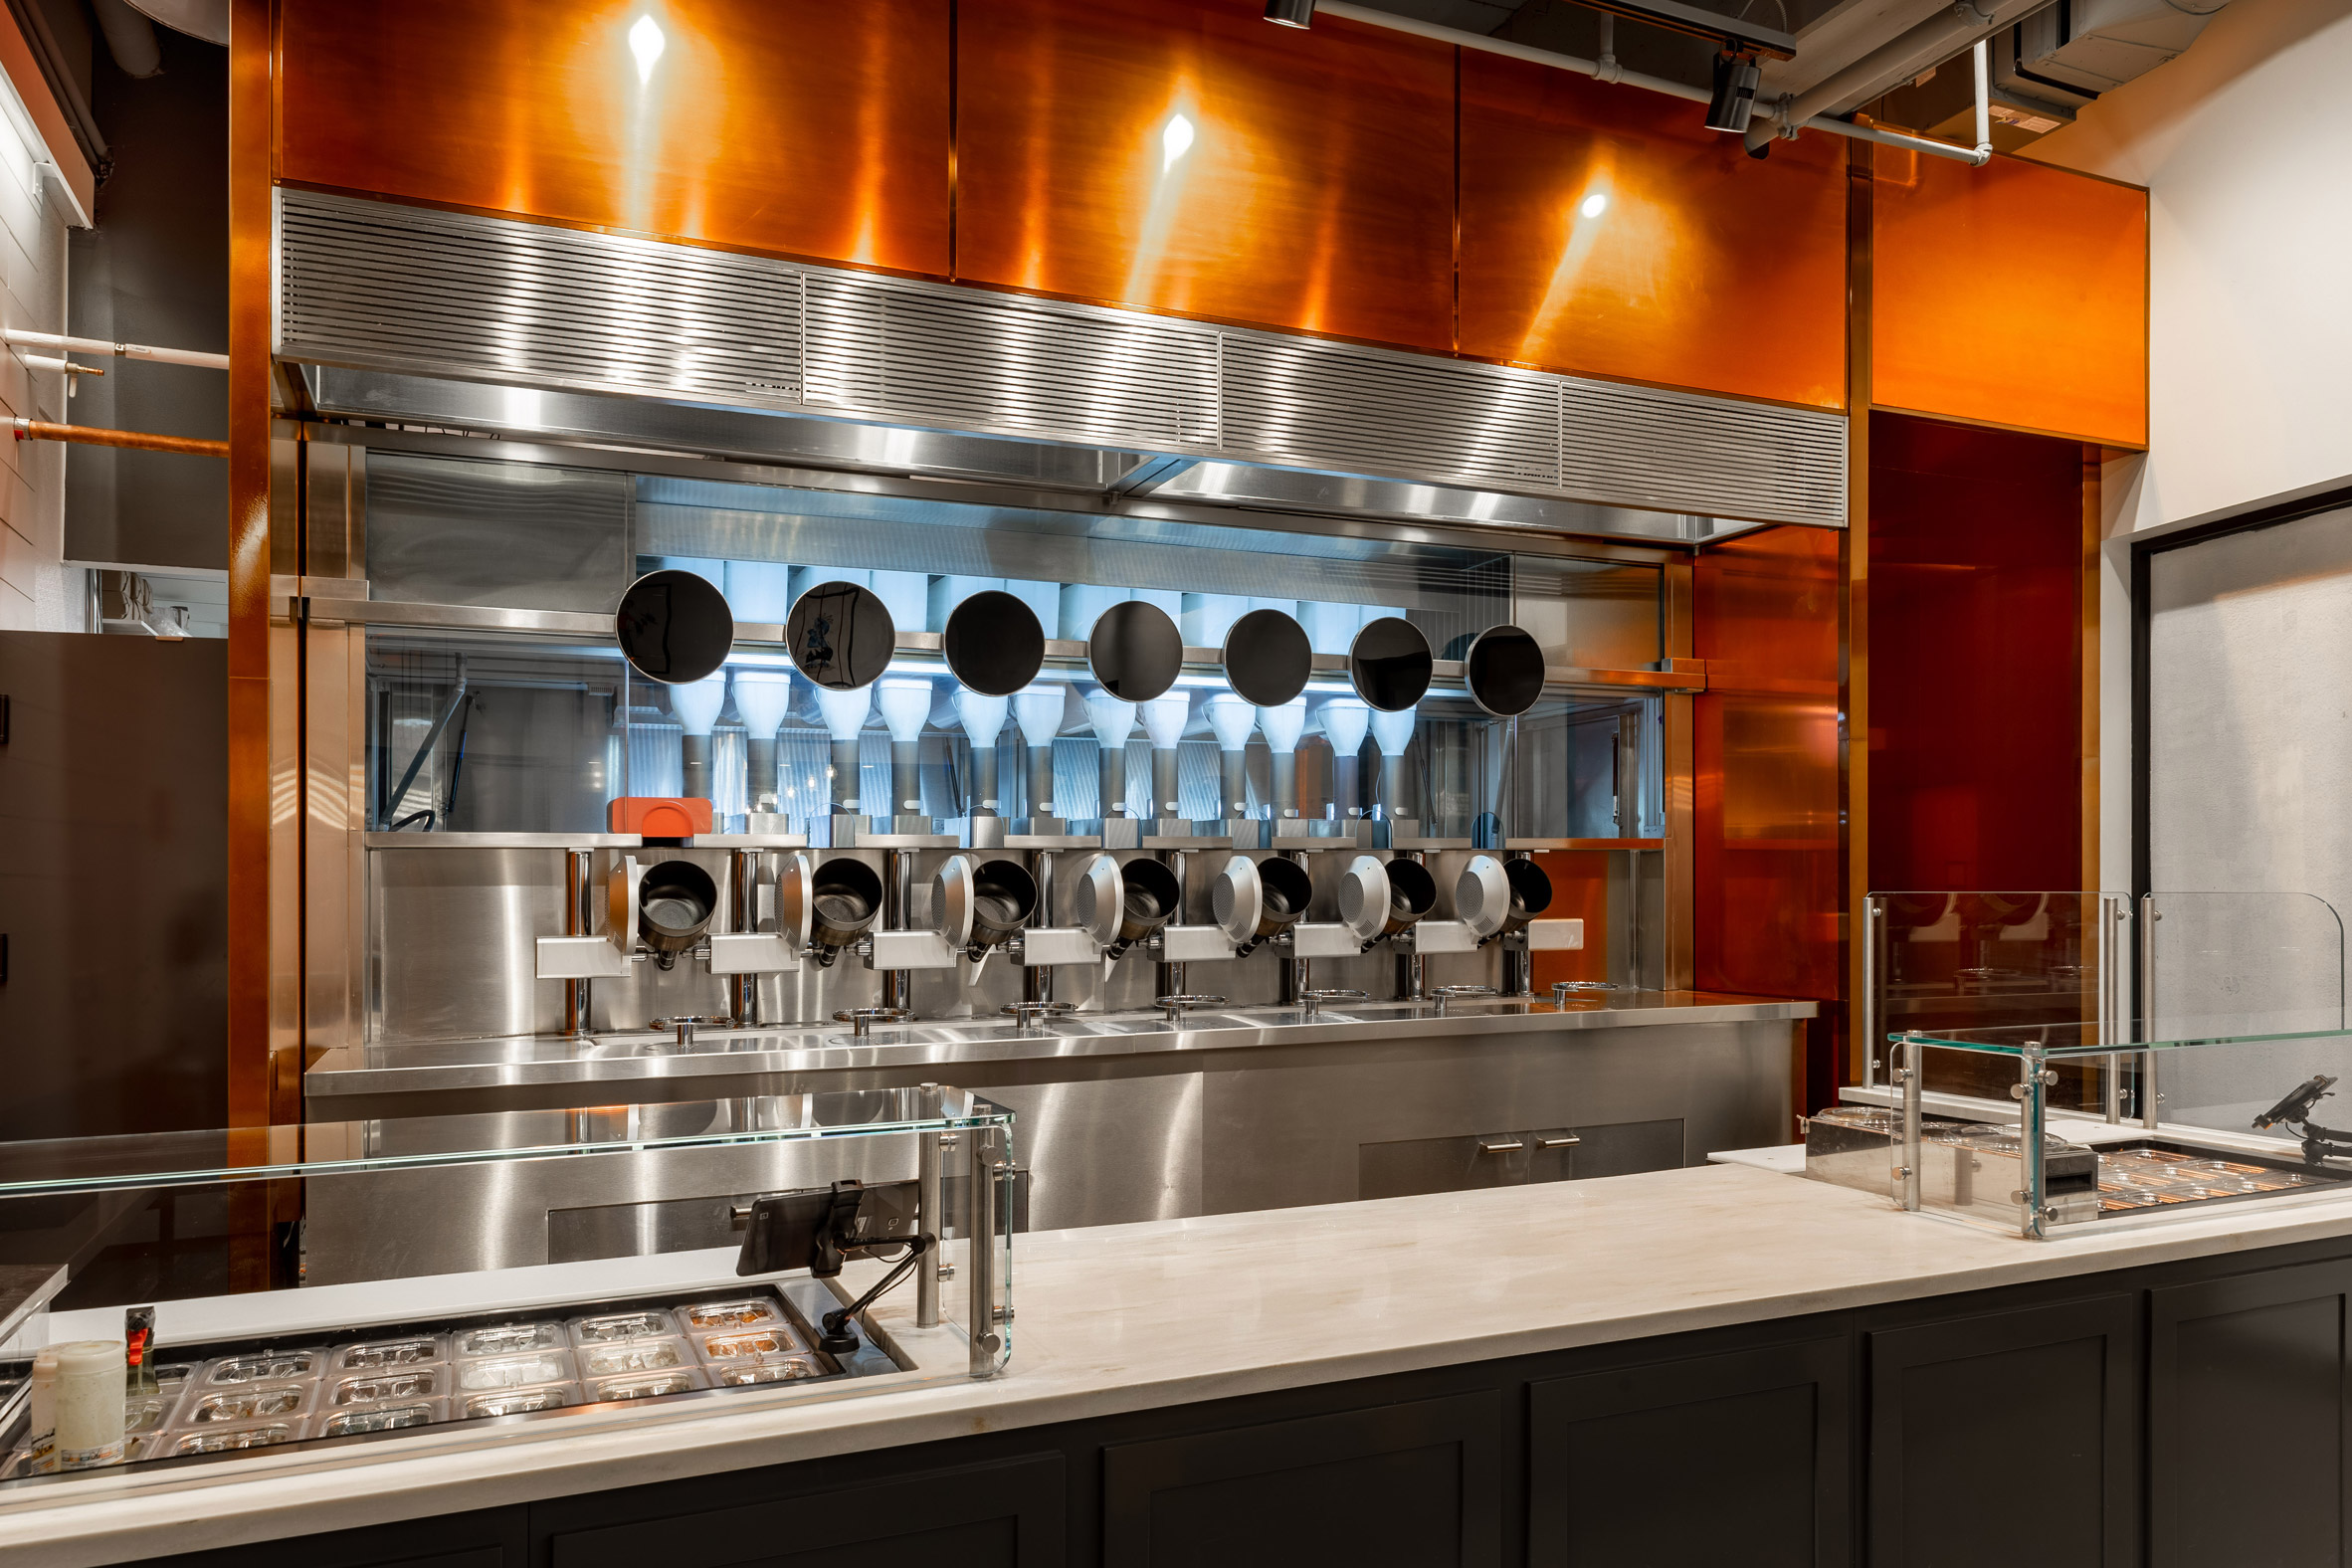 d4a6a92f068a MIT engineers replace chefs with machines at